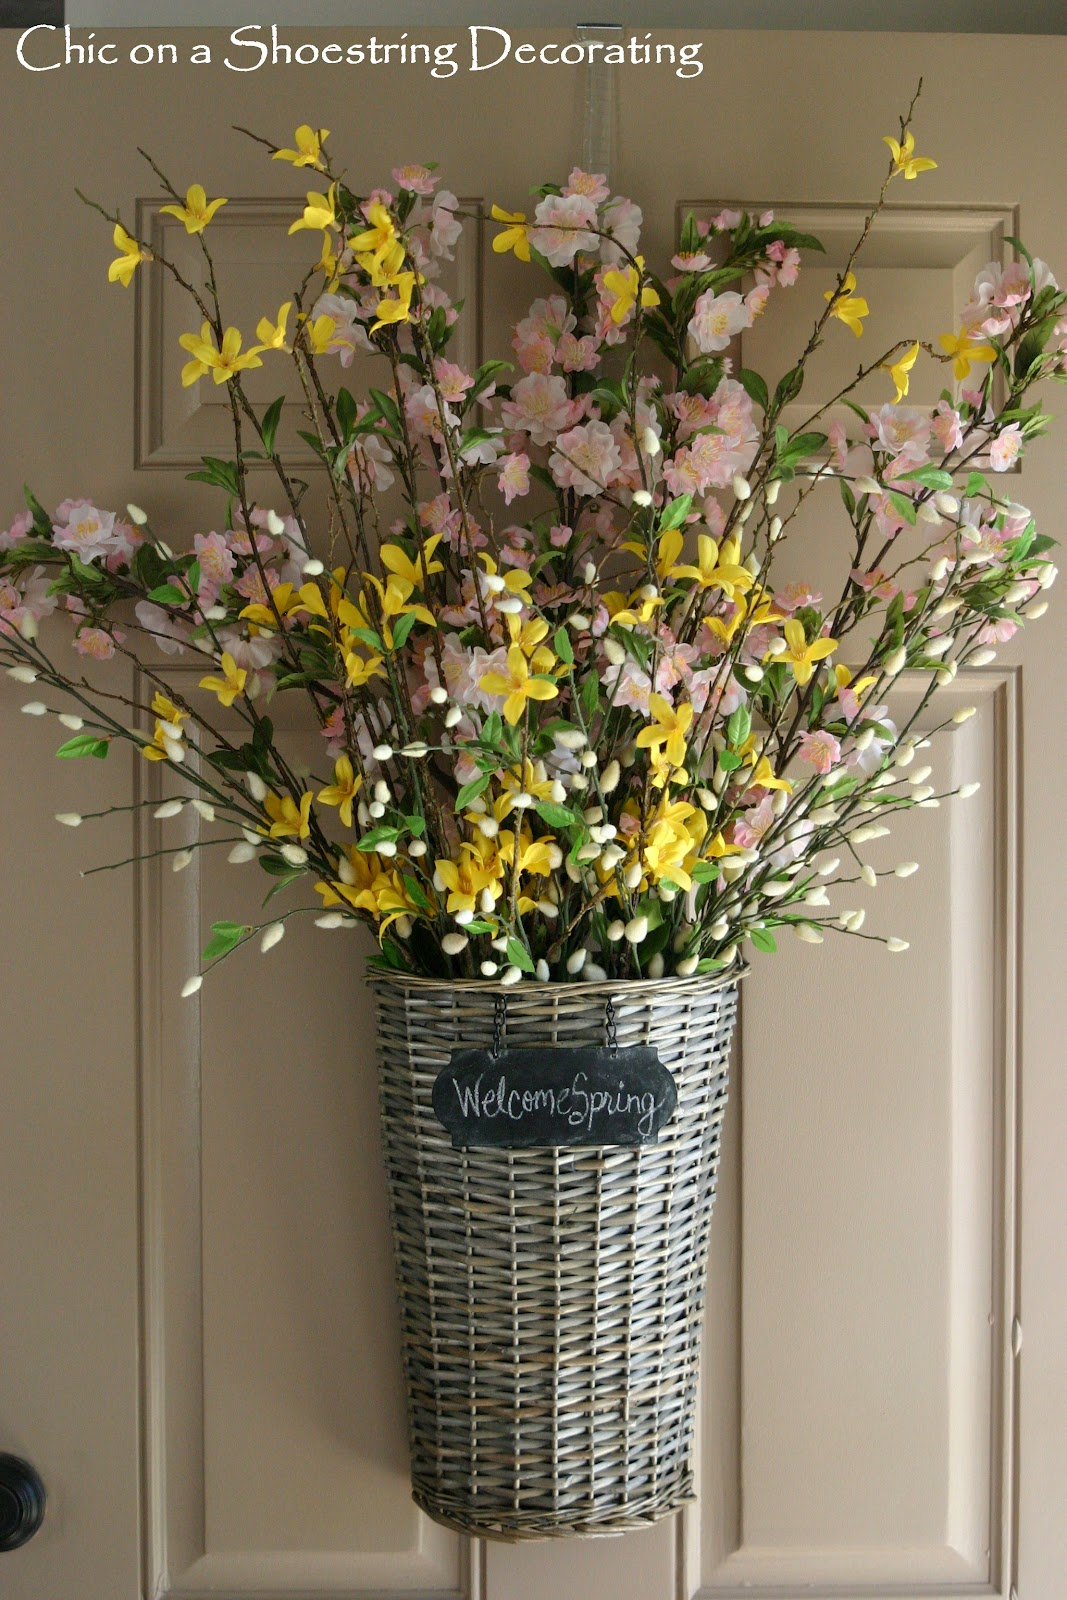 Chic on a shoestring decorating spring front door decor Spring flower arrangements for front door